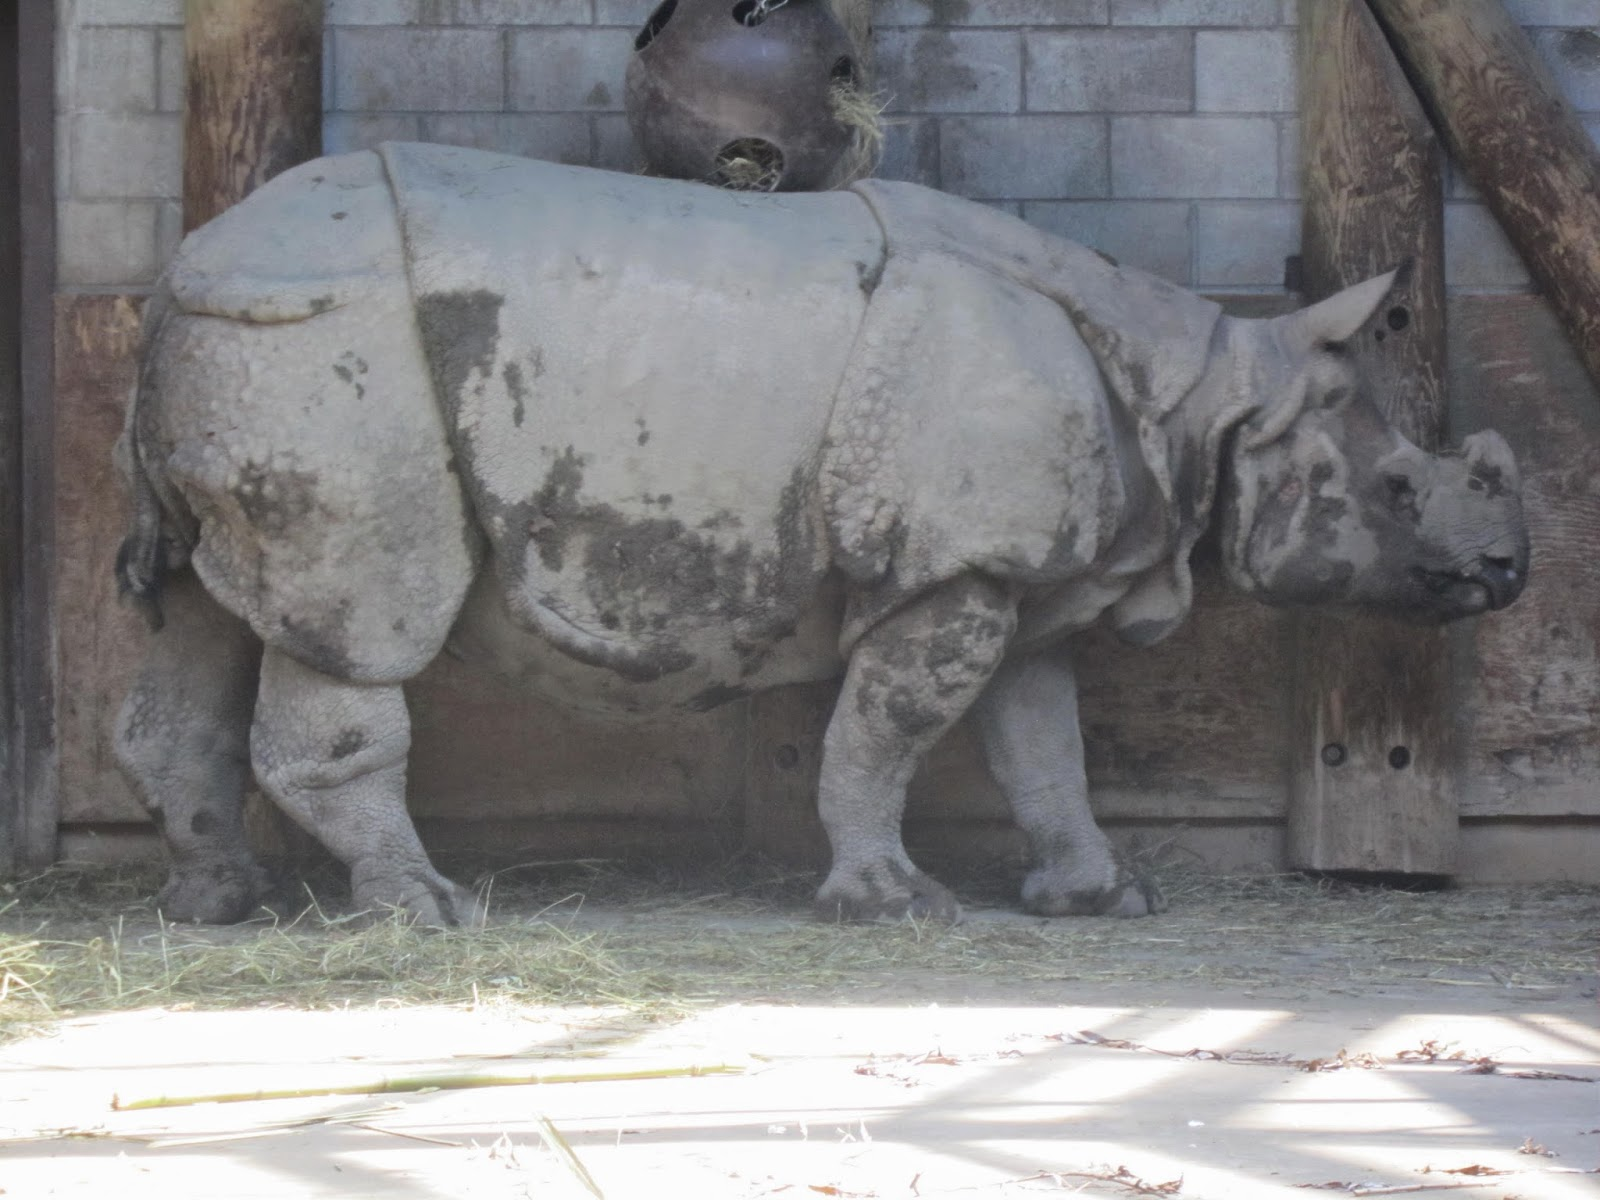 Indian rhinoceros, zoo, Toronto Zoo, animals, animal photography